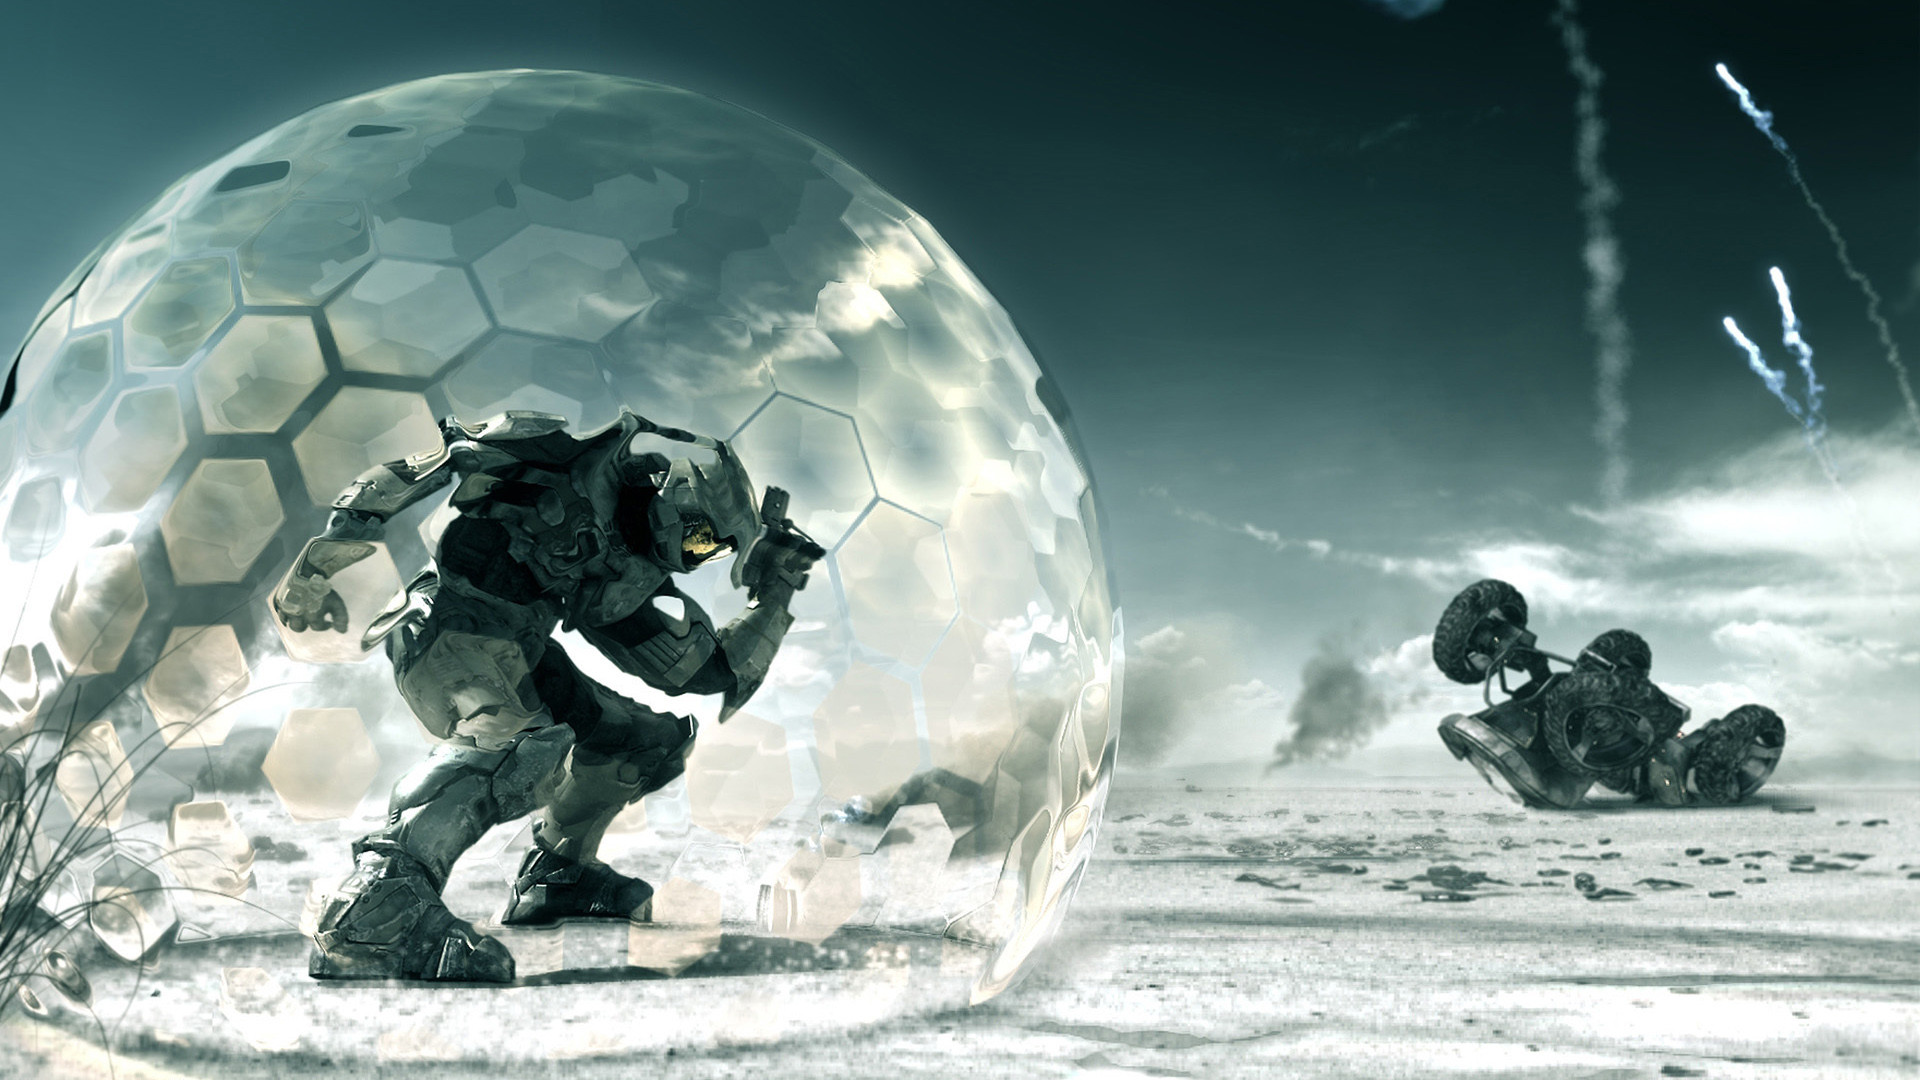 Halo 3 Wallpapers   HD Wallpapers